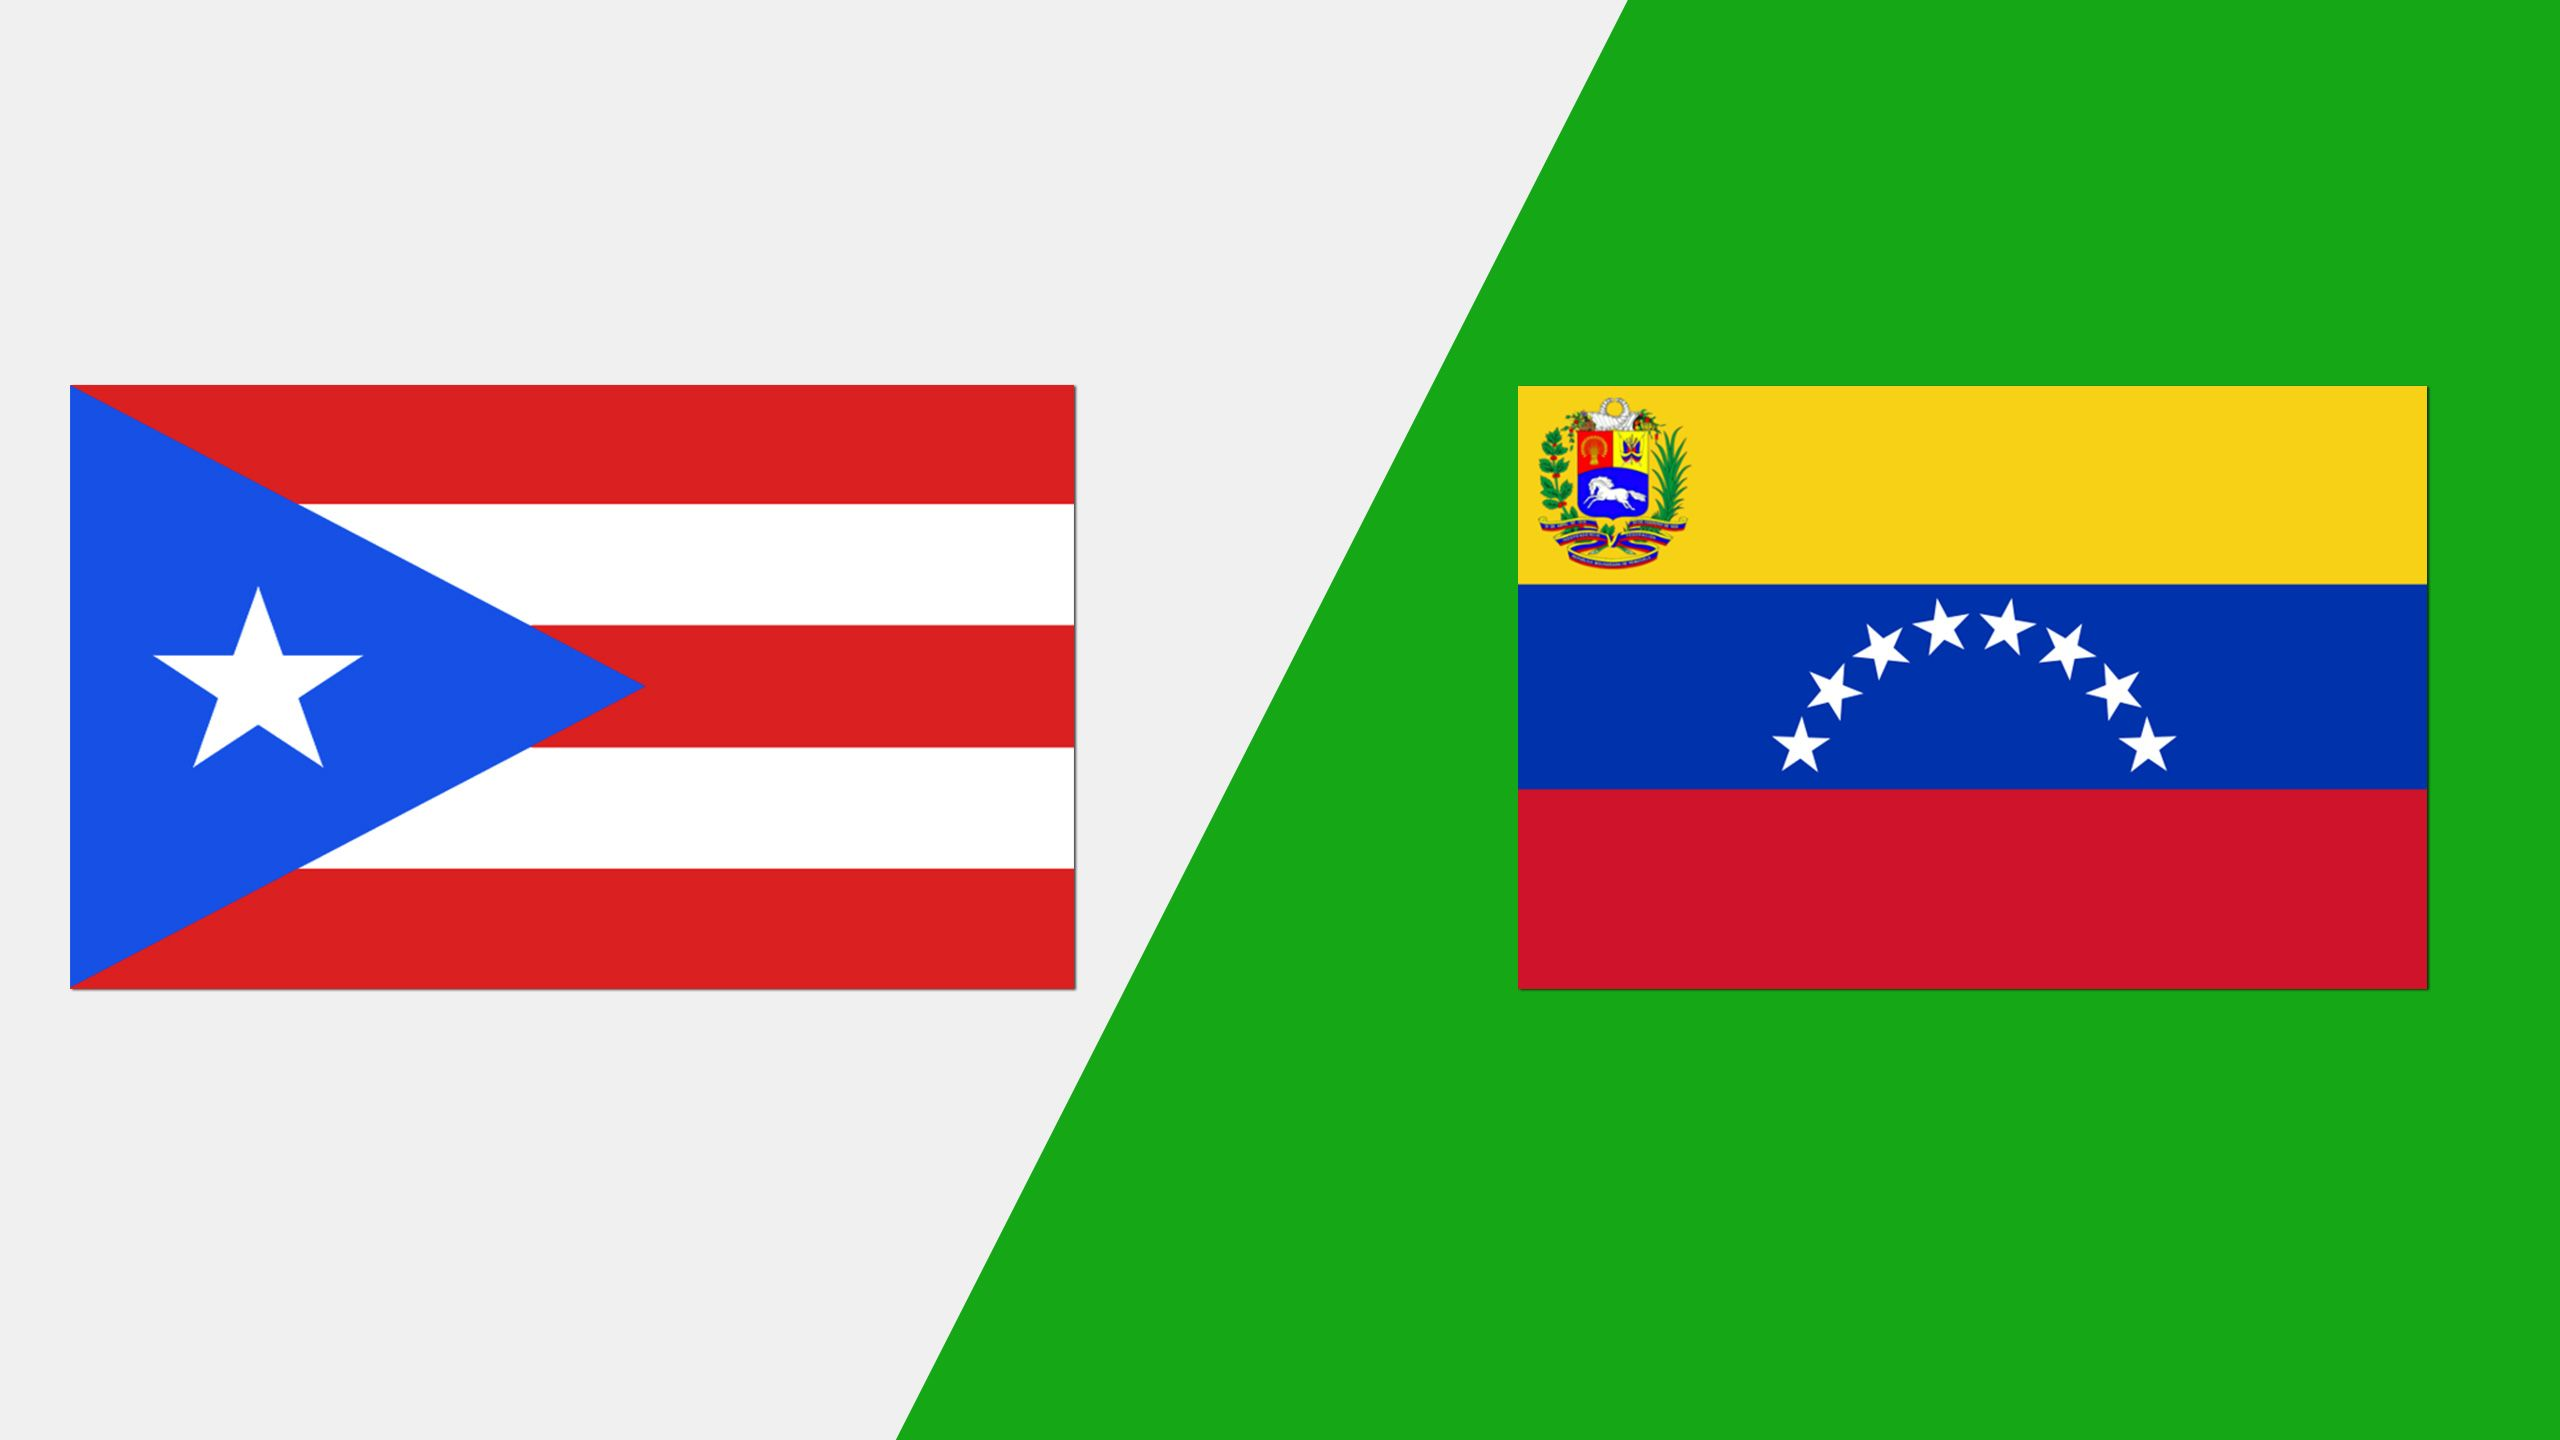 In Spanish - Puerto Rico vs. Venezuela (Grupo A)